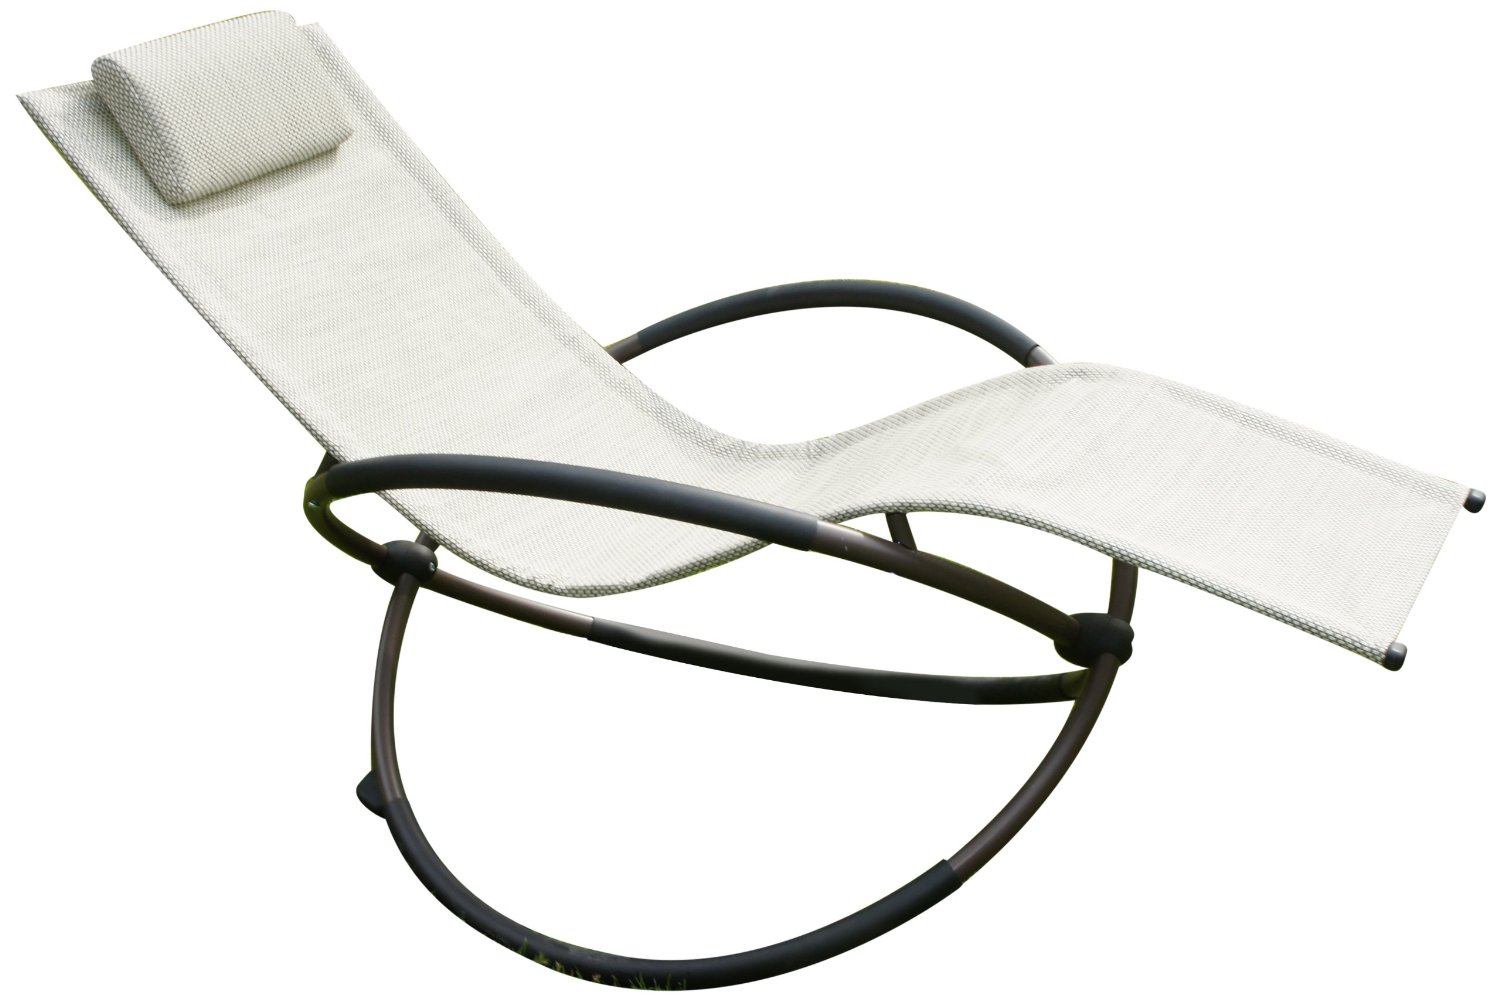 Des rocking chairs design d coratifs for Le jardin qui bascule streaming